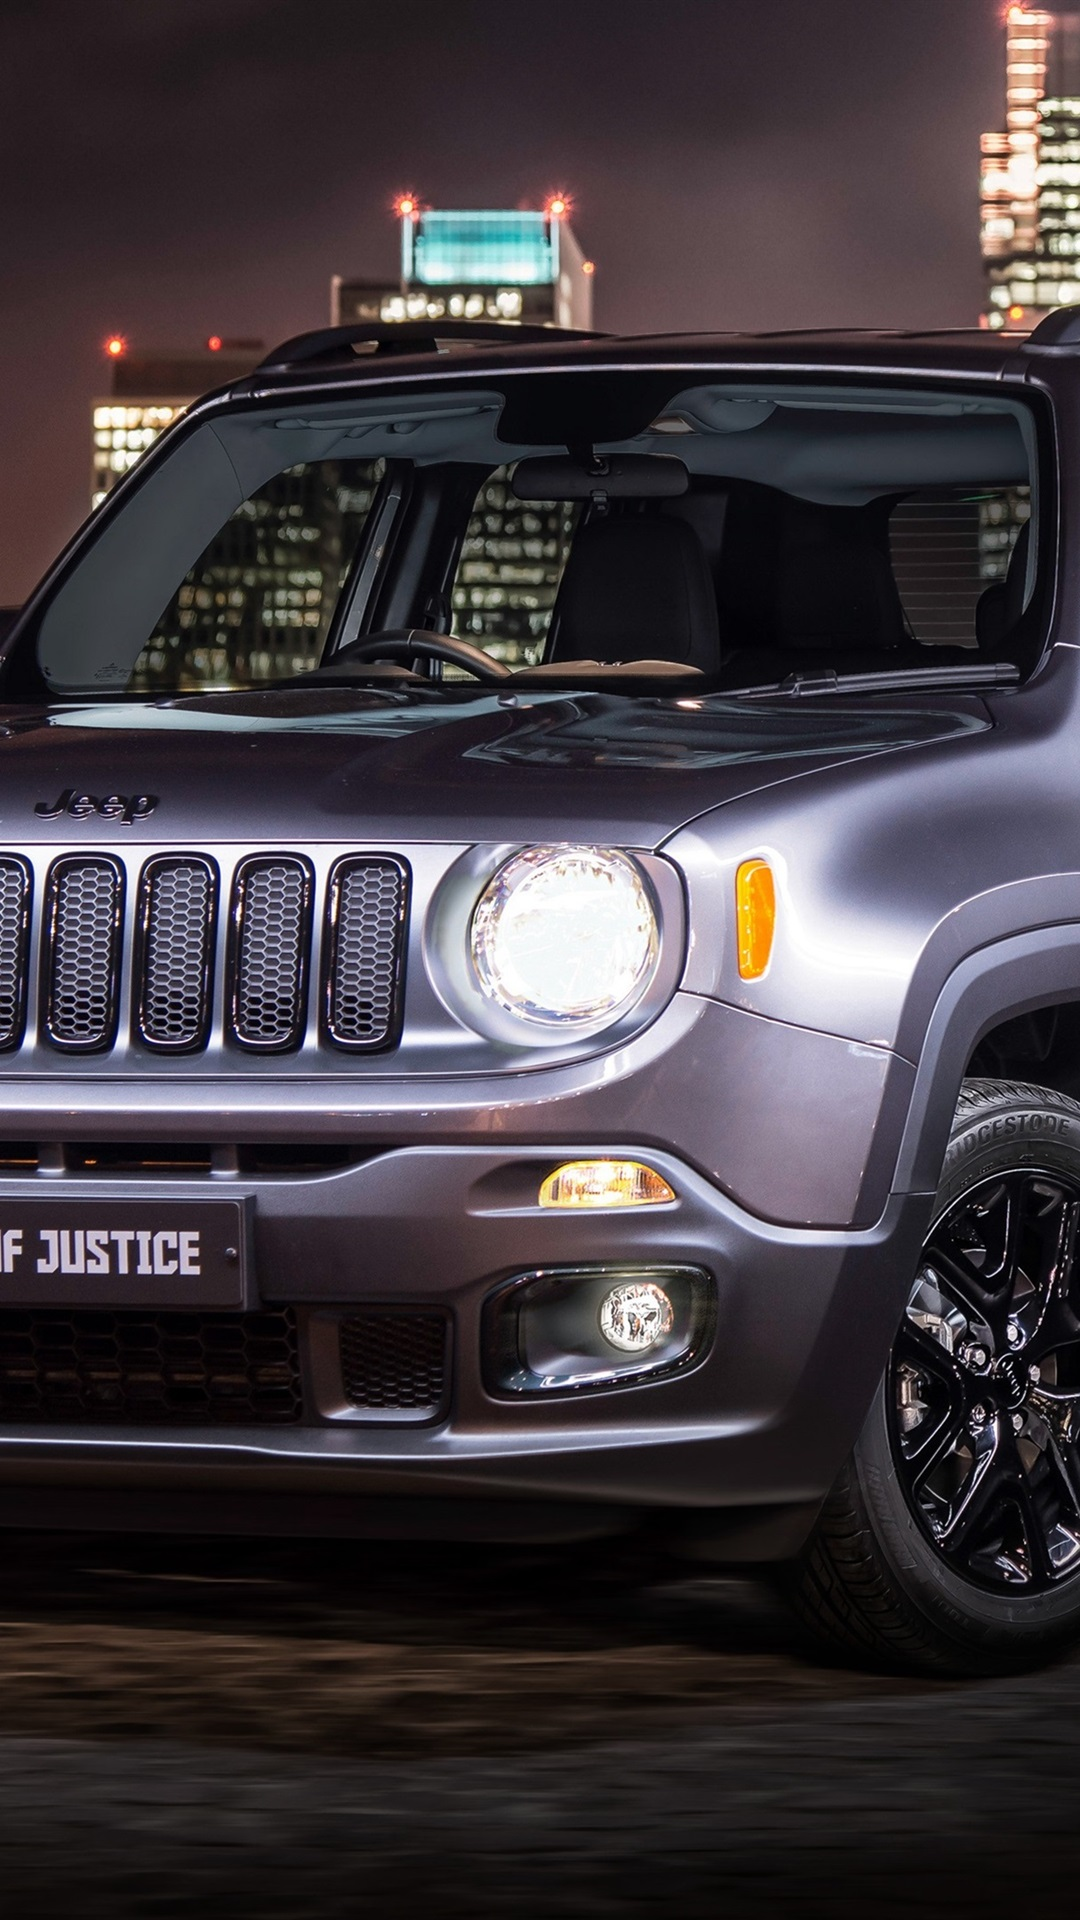 Jeep Renegade Dawn Of Justice 1080x1920 Iphone 8 7 6 6s